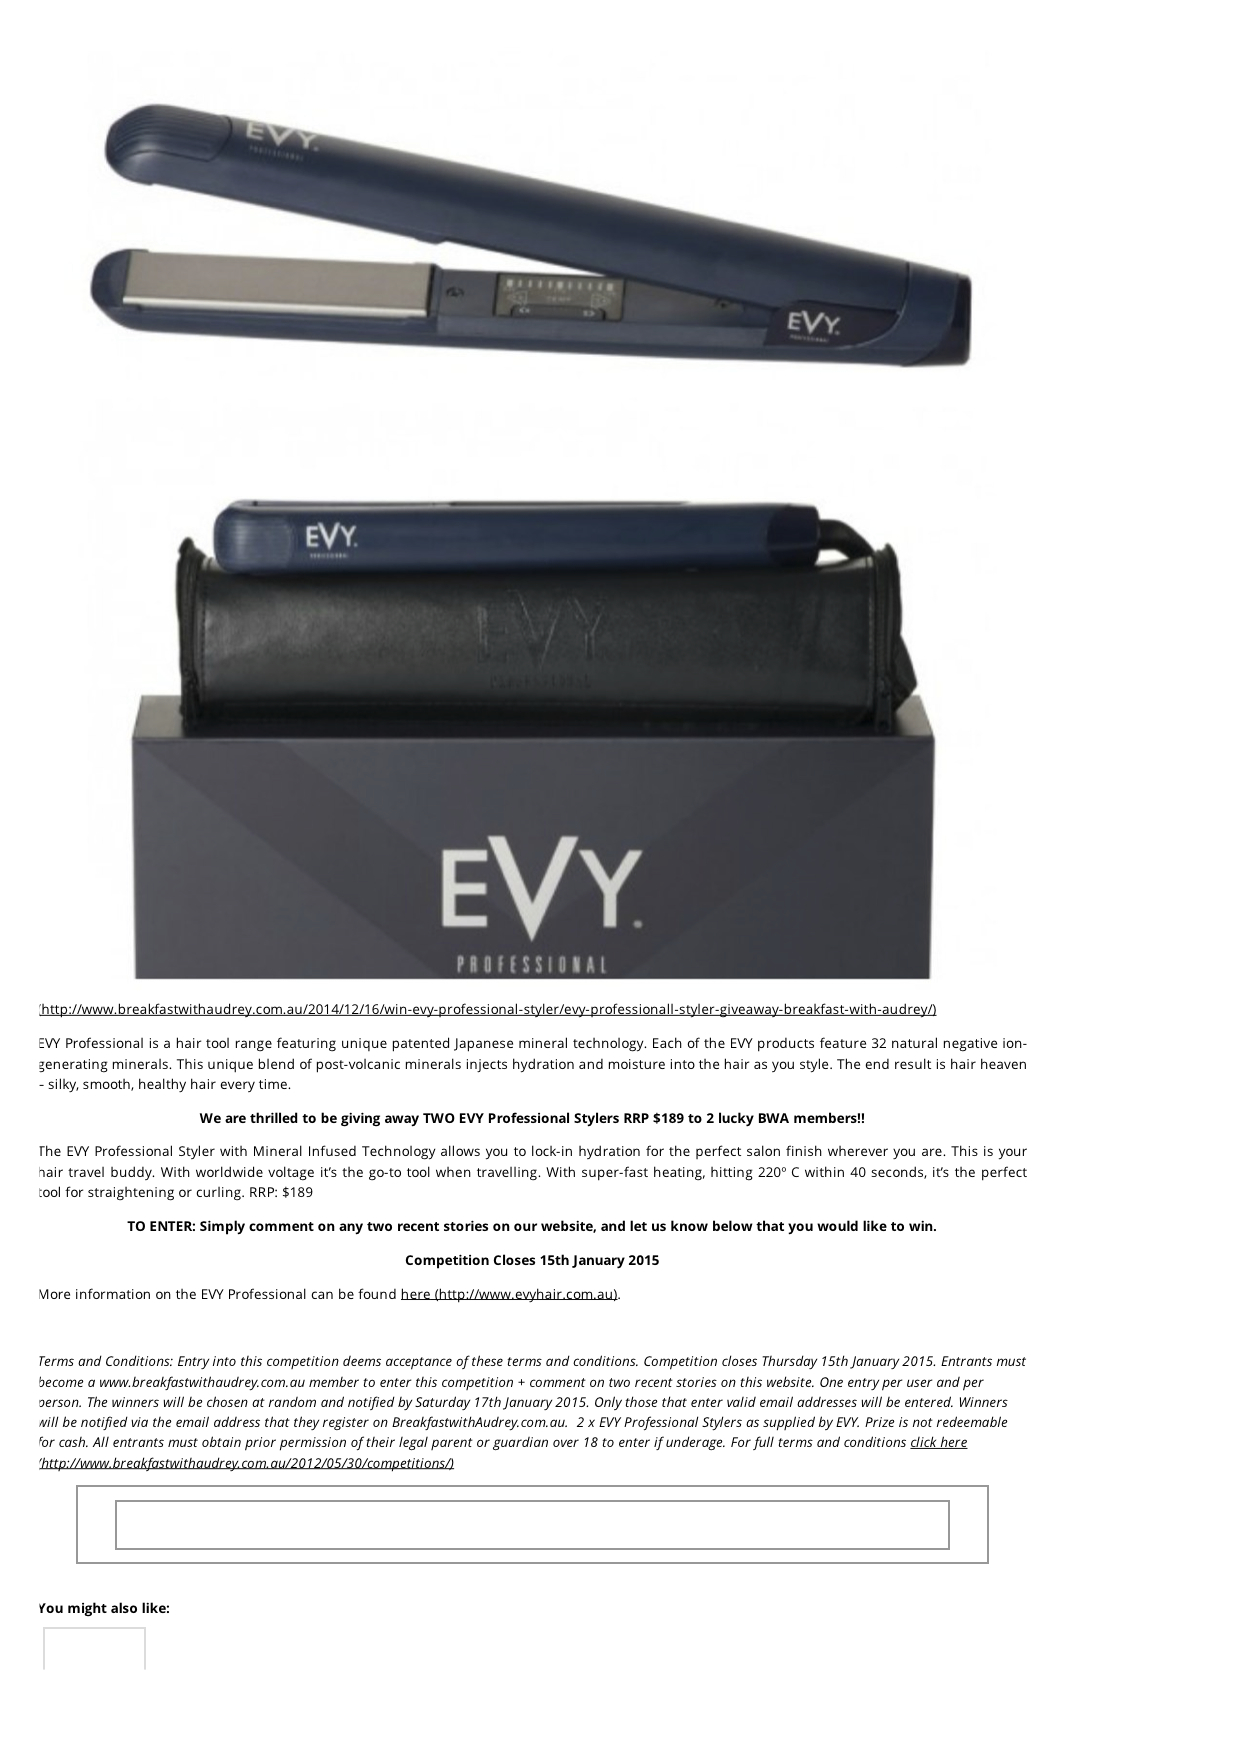 Win 1 of 2 EVY Professional Stylers Valued At $189 each! - Breakfast With Audrey1